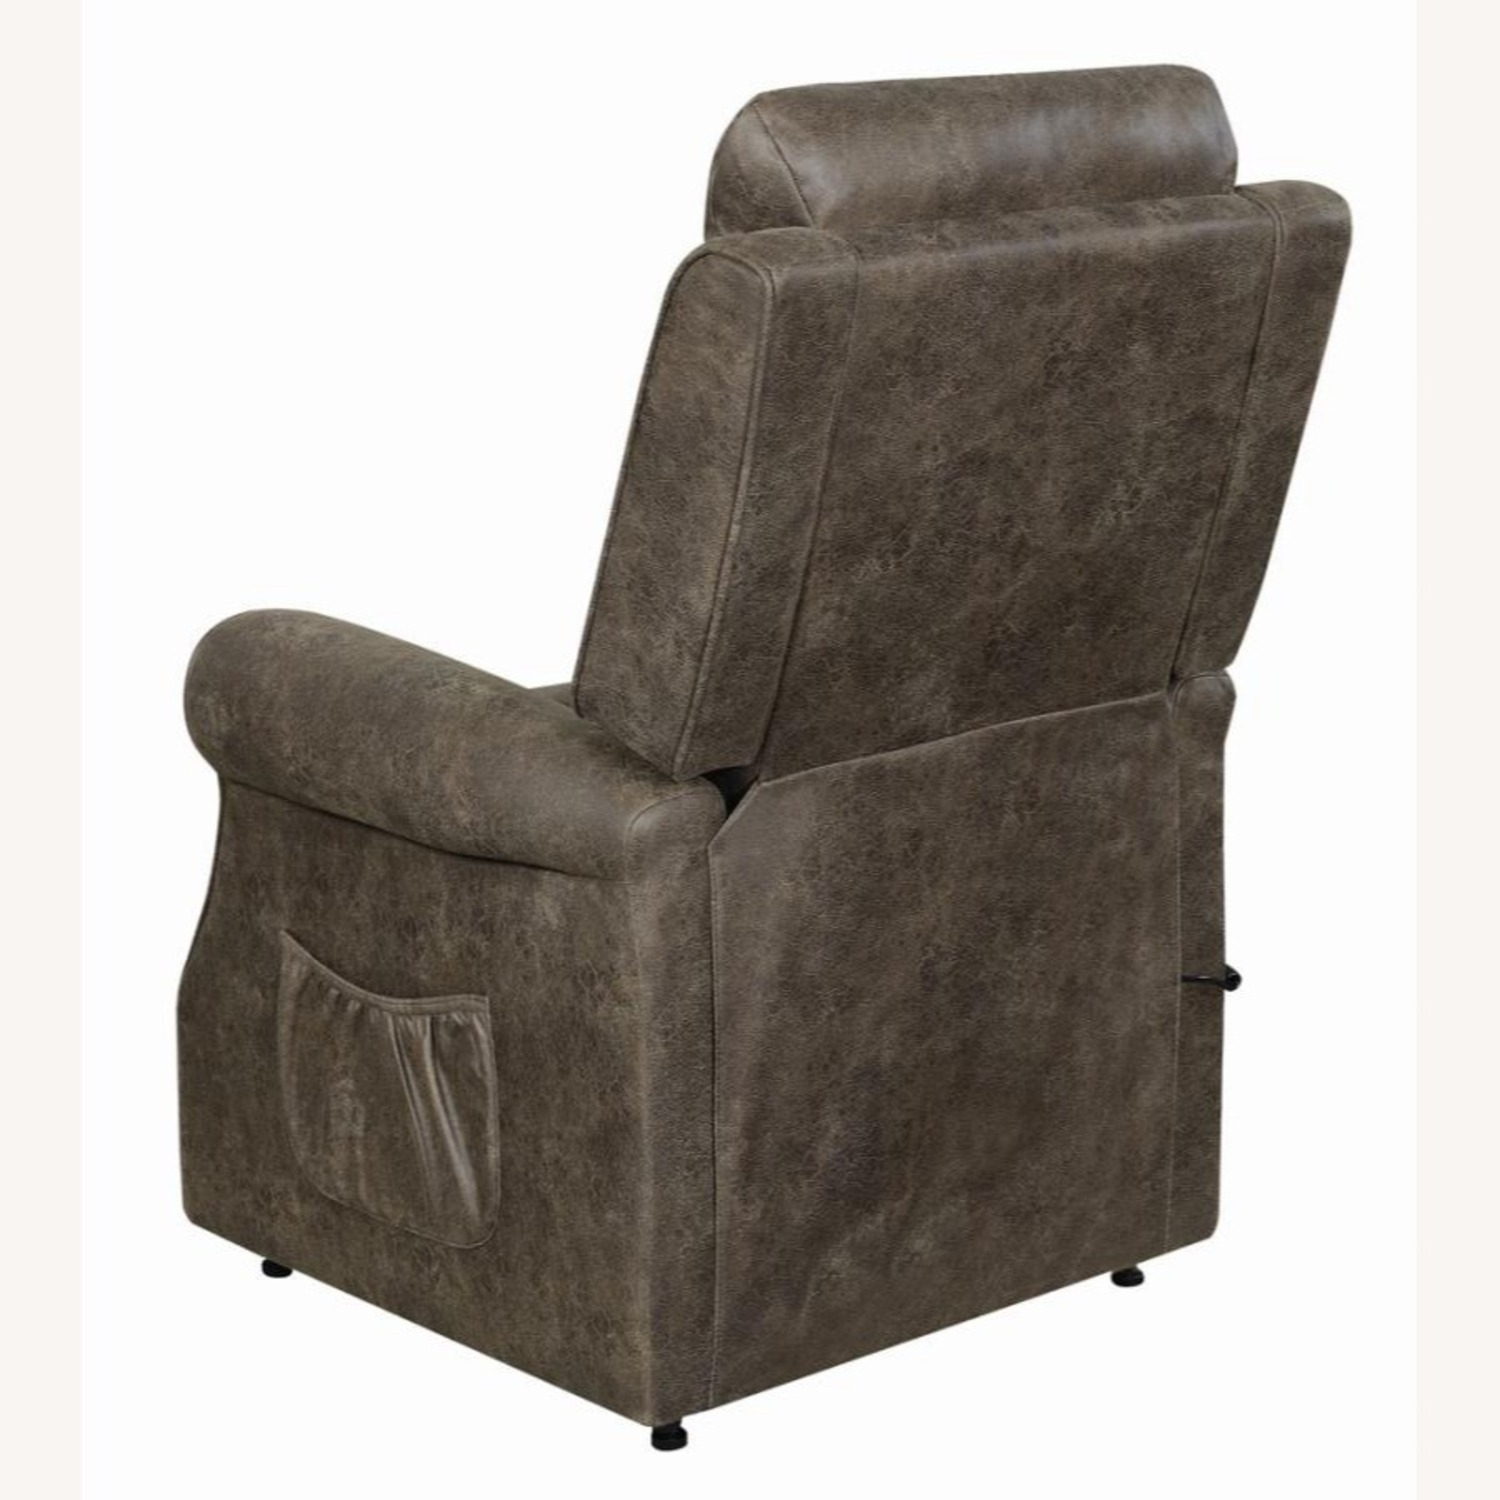 Power Lift Recliner In Brown Faux Suede Upholstery - image-4